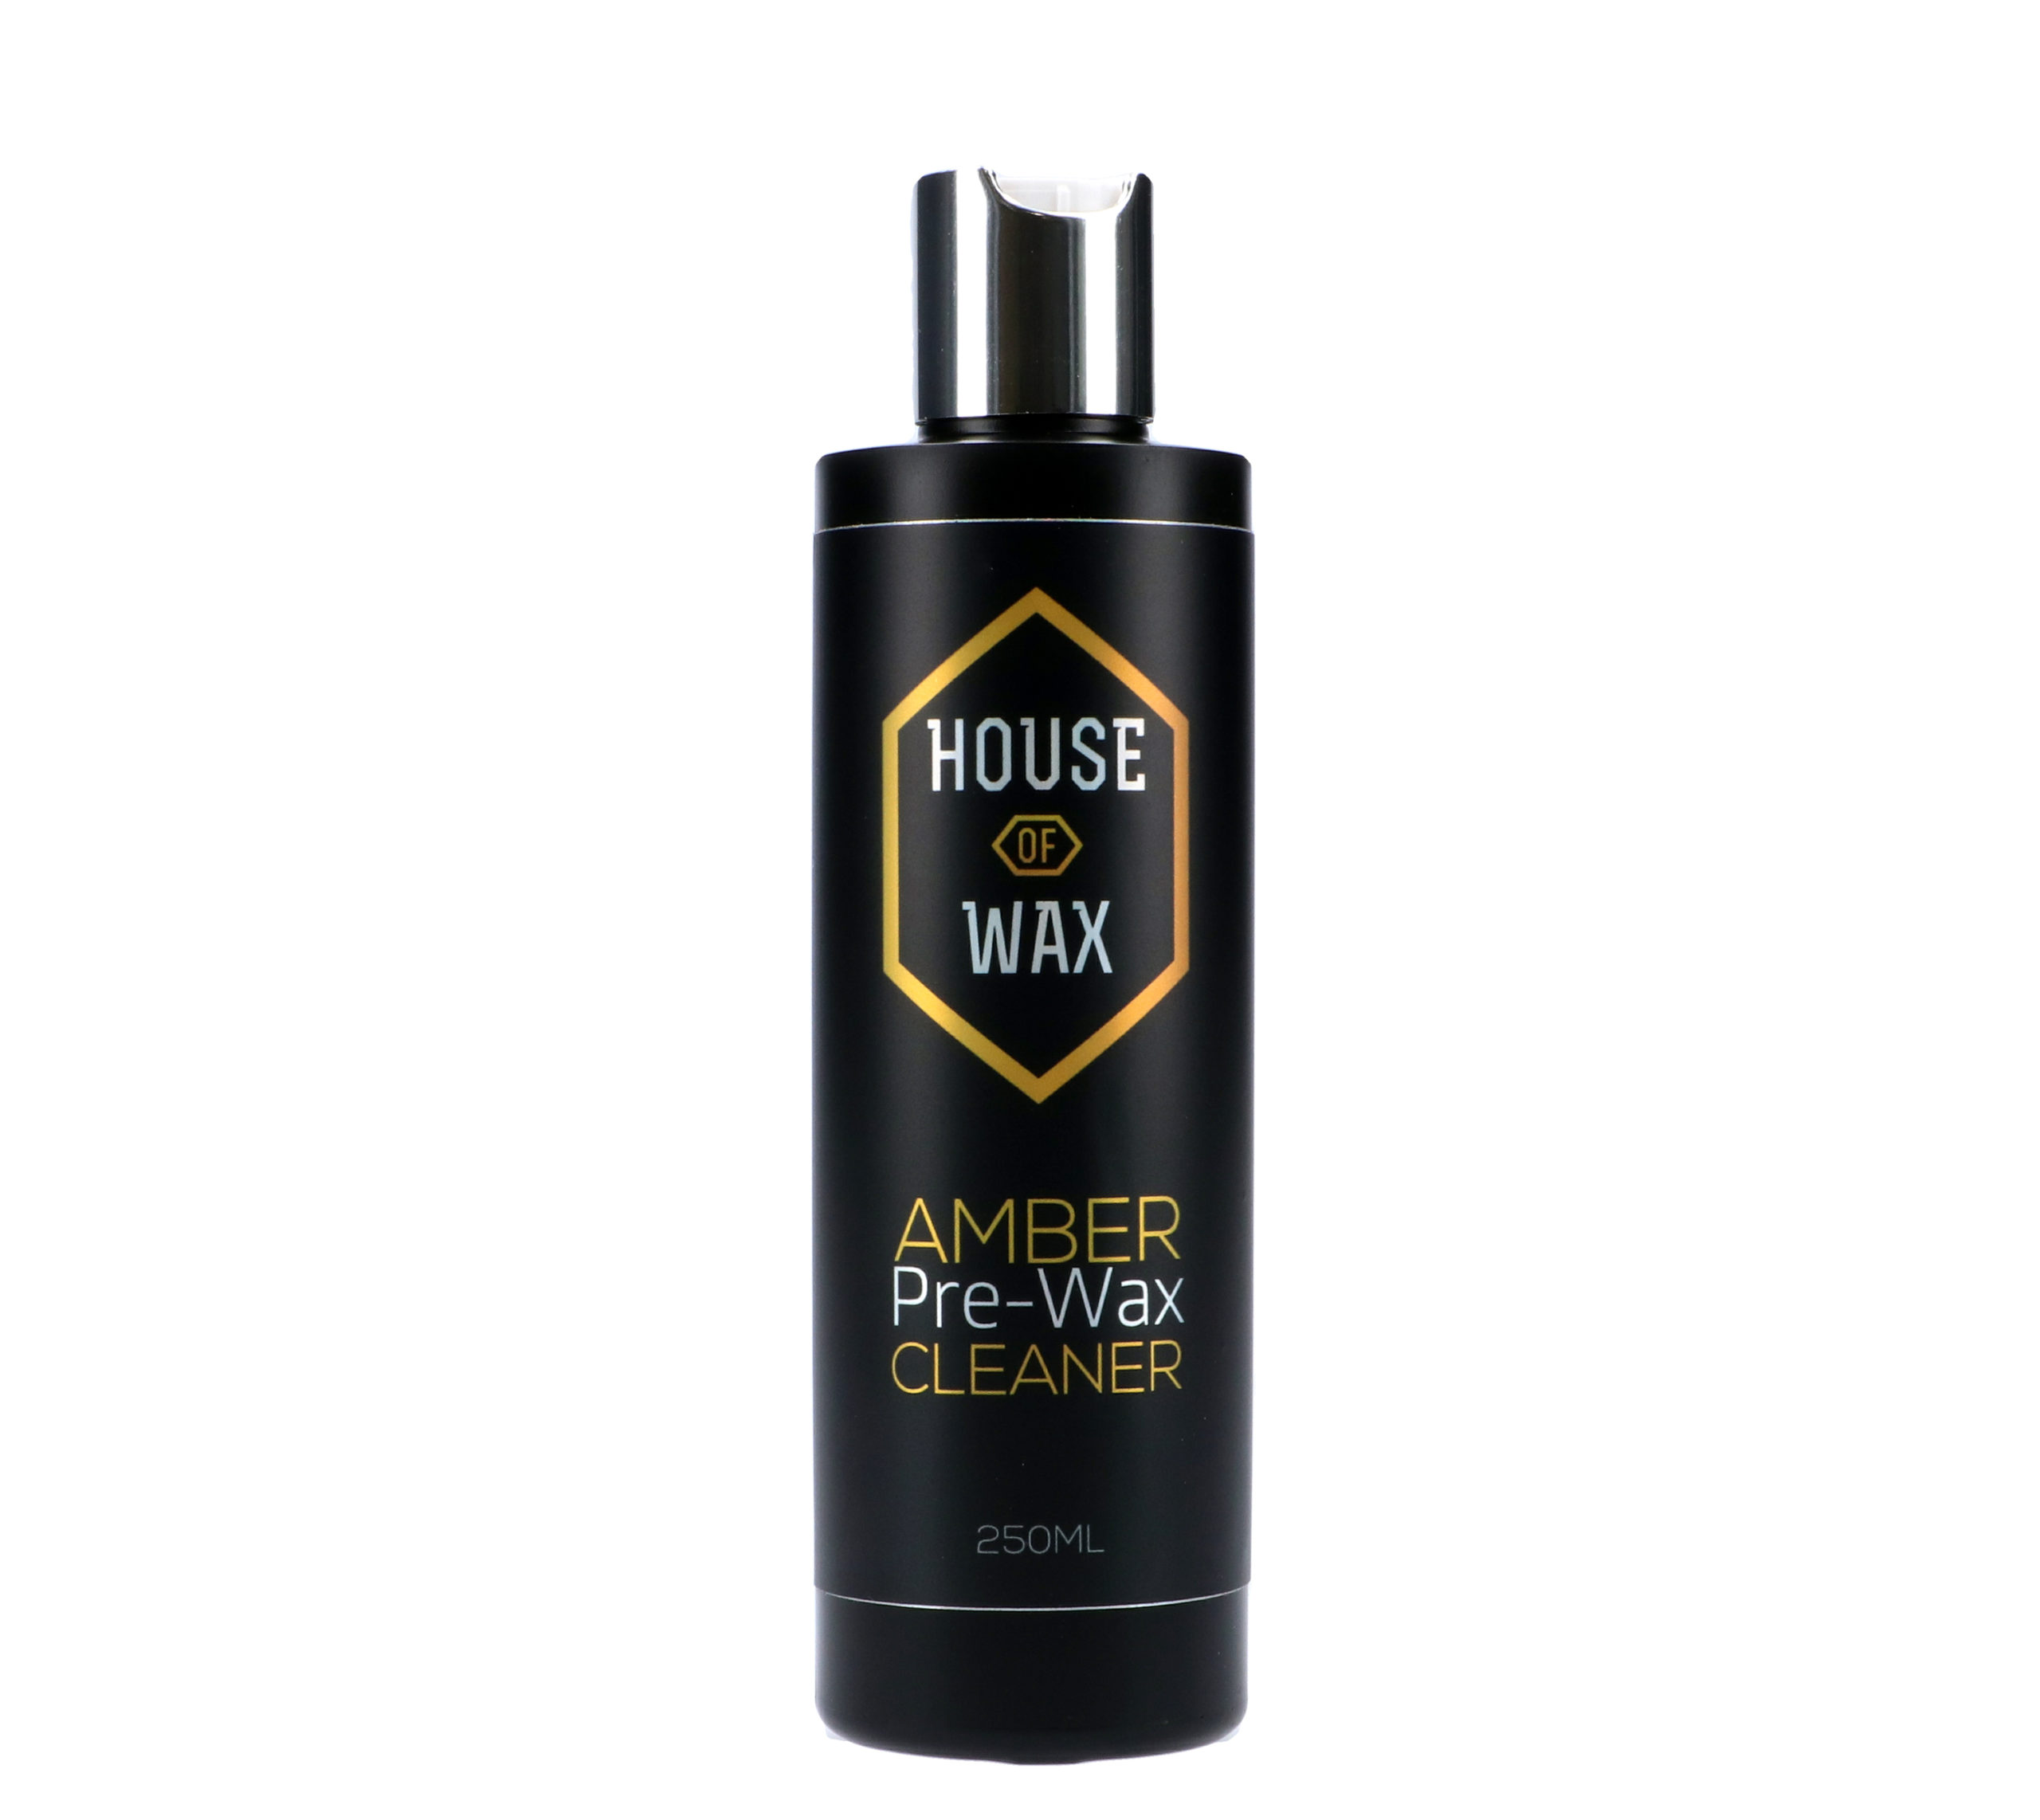 House of Wax Amber Pre-Wax Cleaner 250 ml